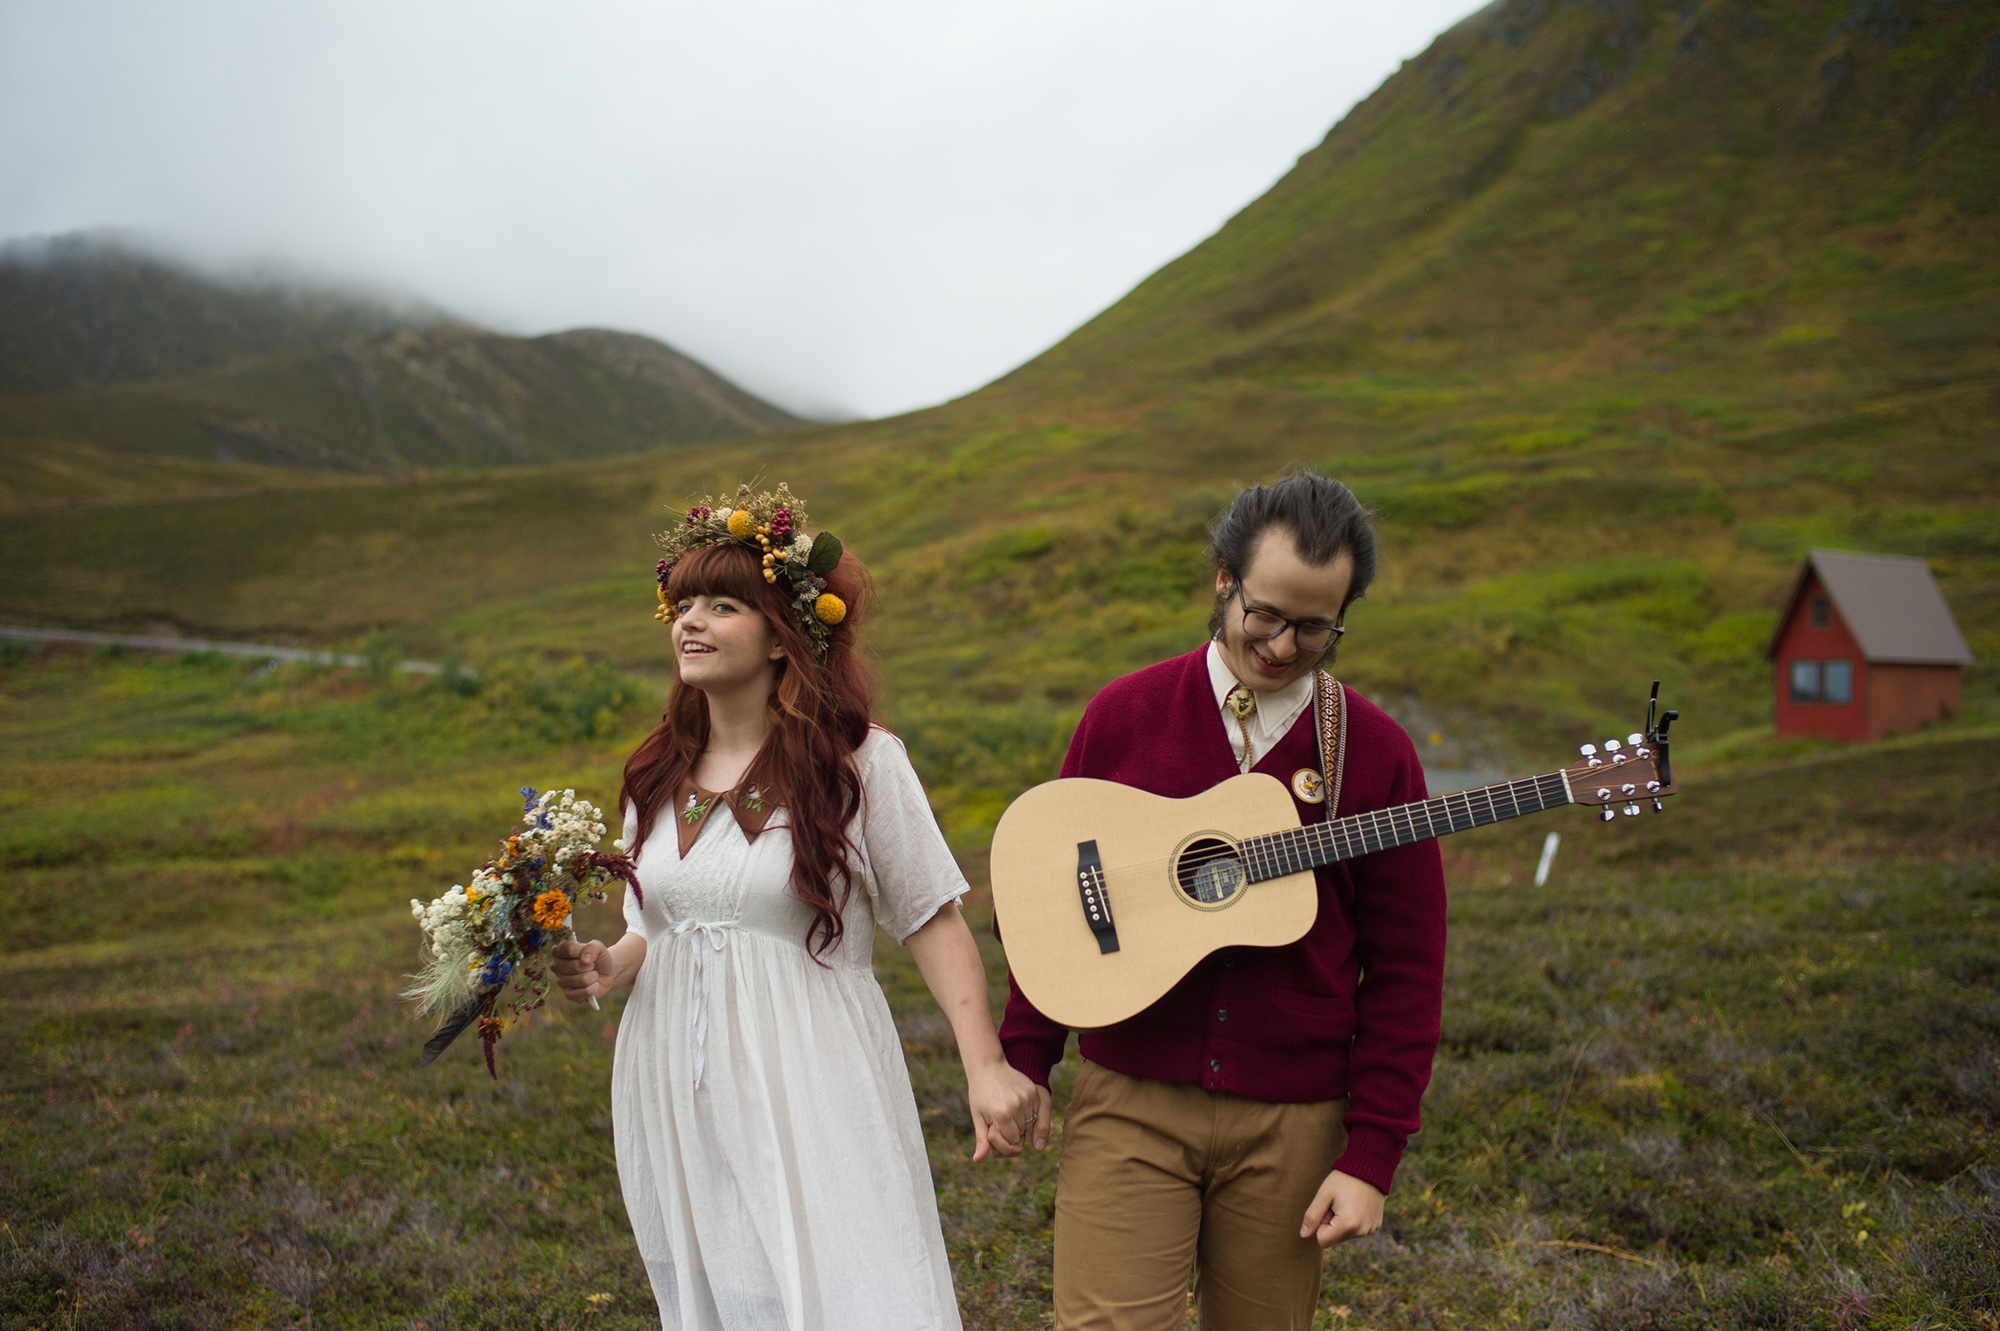 A wedding couple is walking through a meadow in the mountains and holding hands.